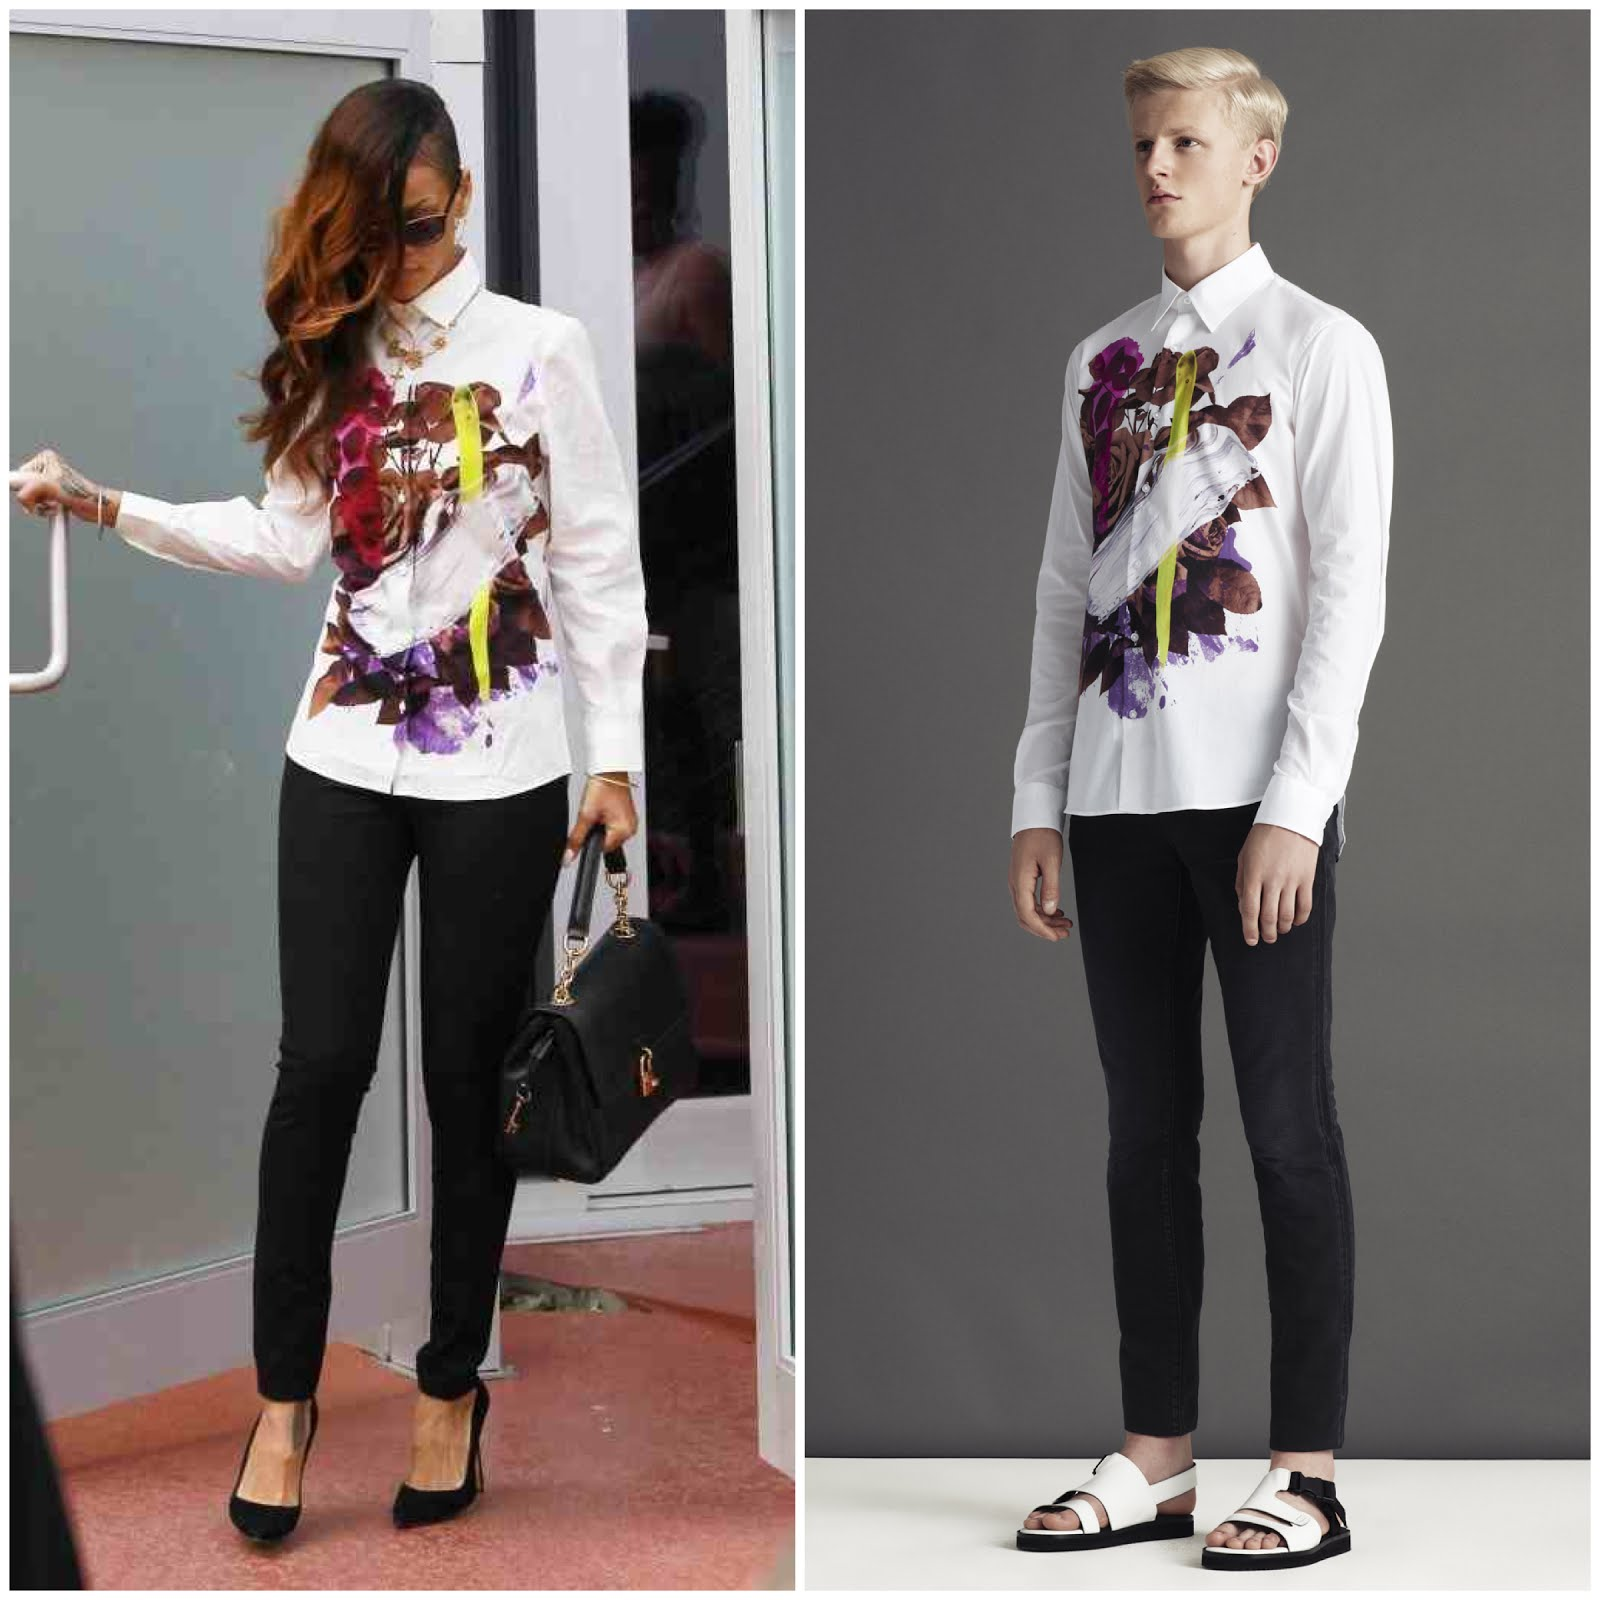 00O00 Menswear Blog Rihanna Christopher Kane SS2013 paint brush shirt leaving Chris Brown's house in Los Angeles February 2013